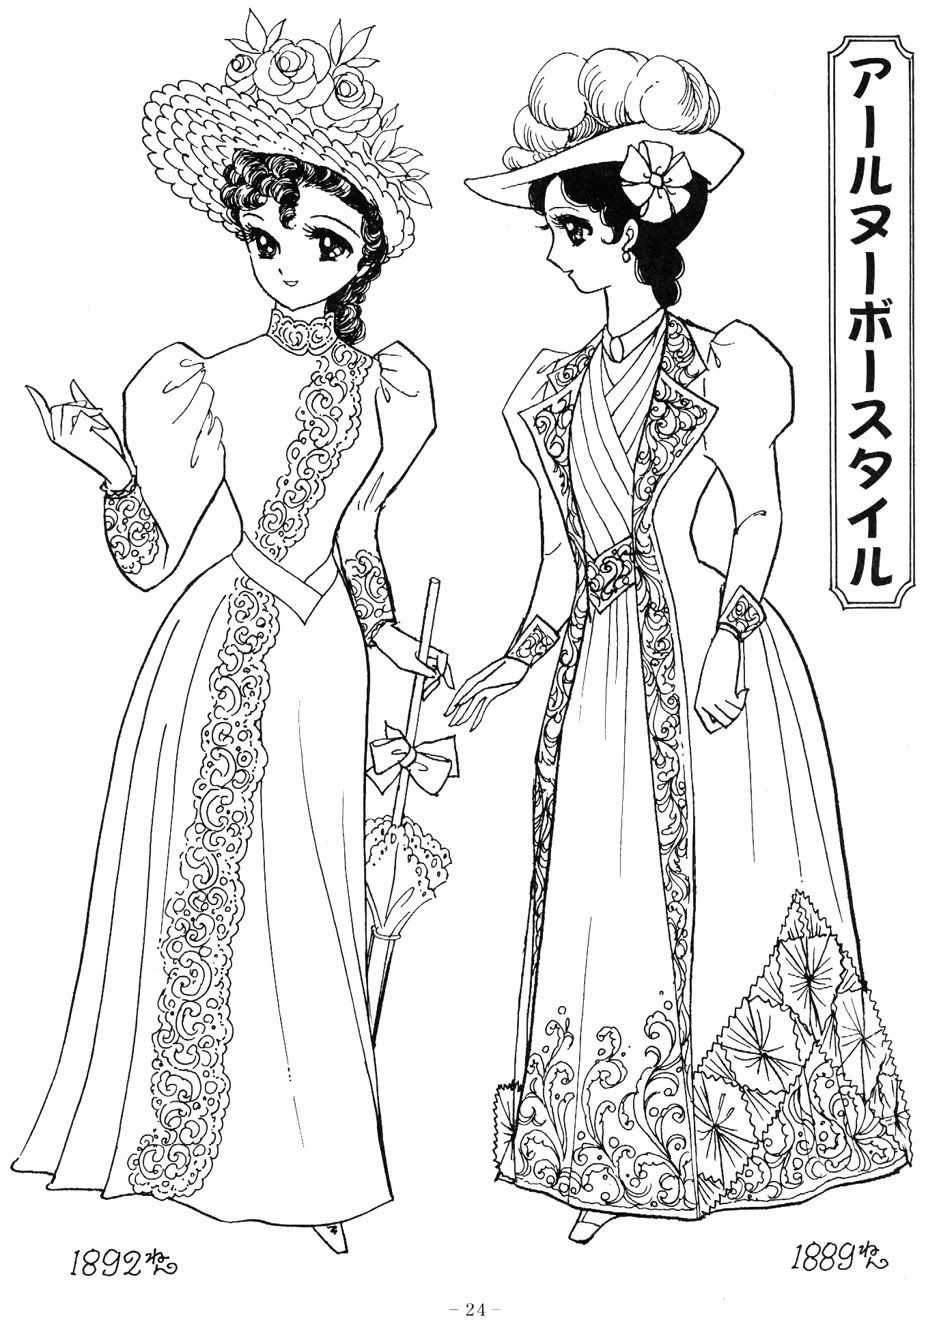 Pin by yuzang chan on coloring book | Pinterest | Historical costume ...